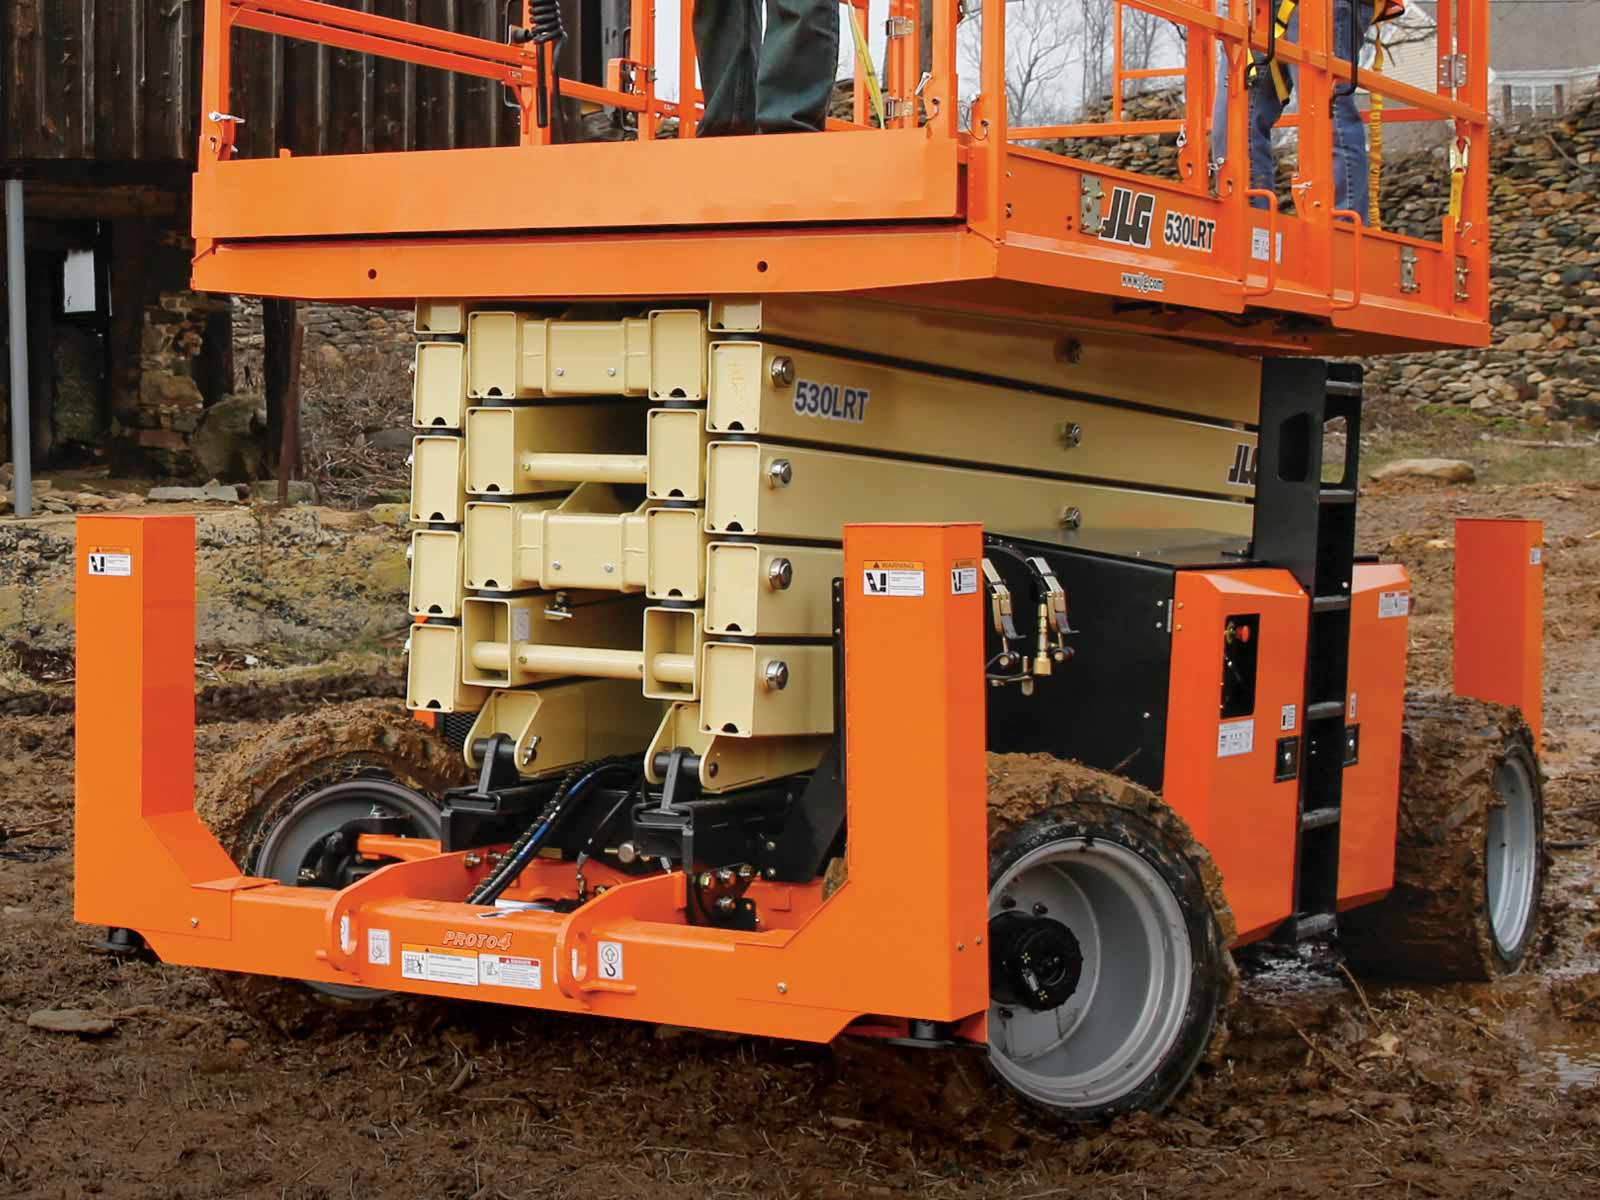 JLG-530LRT-outriggers-4WD